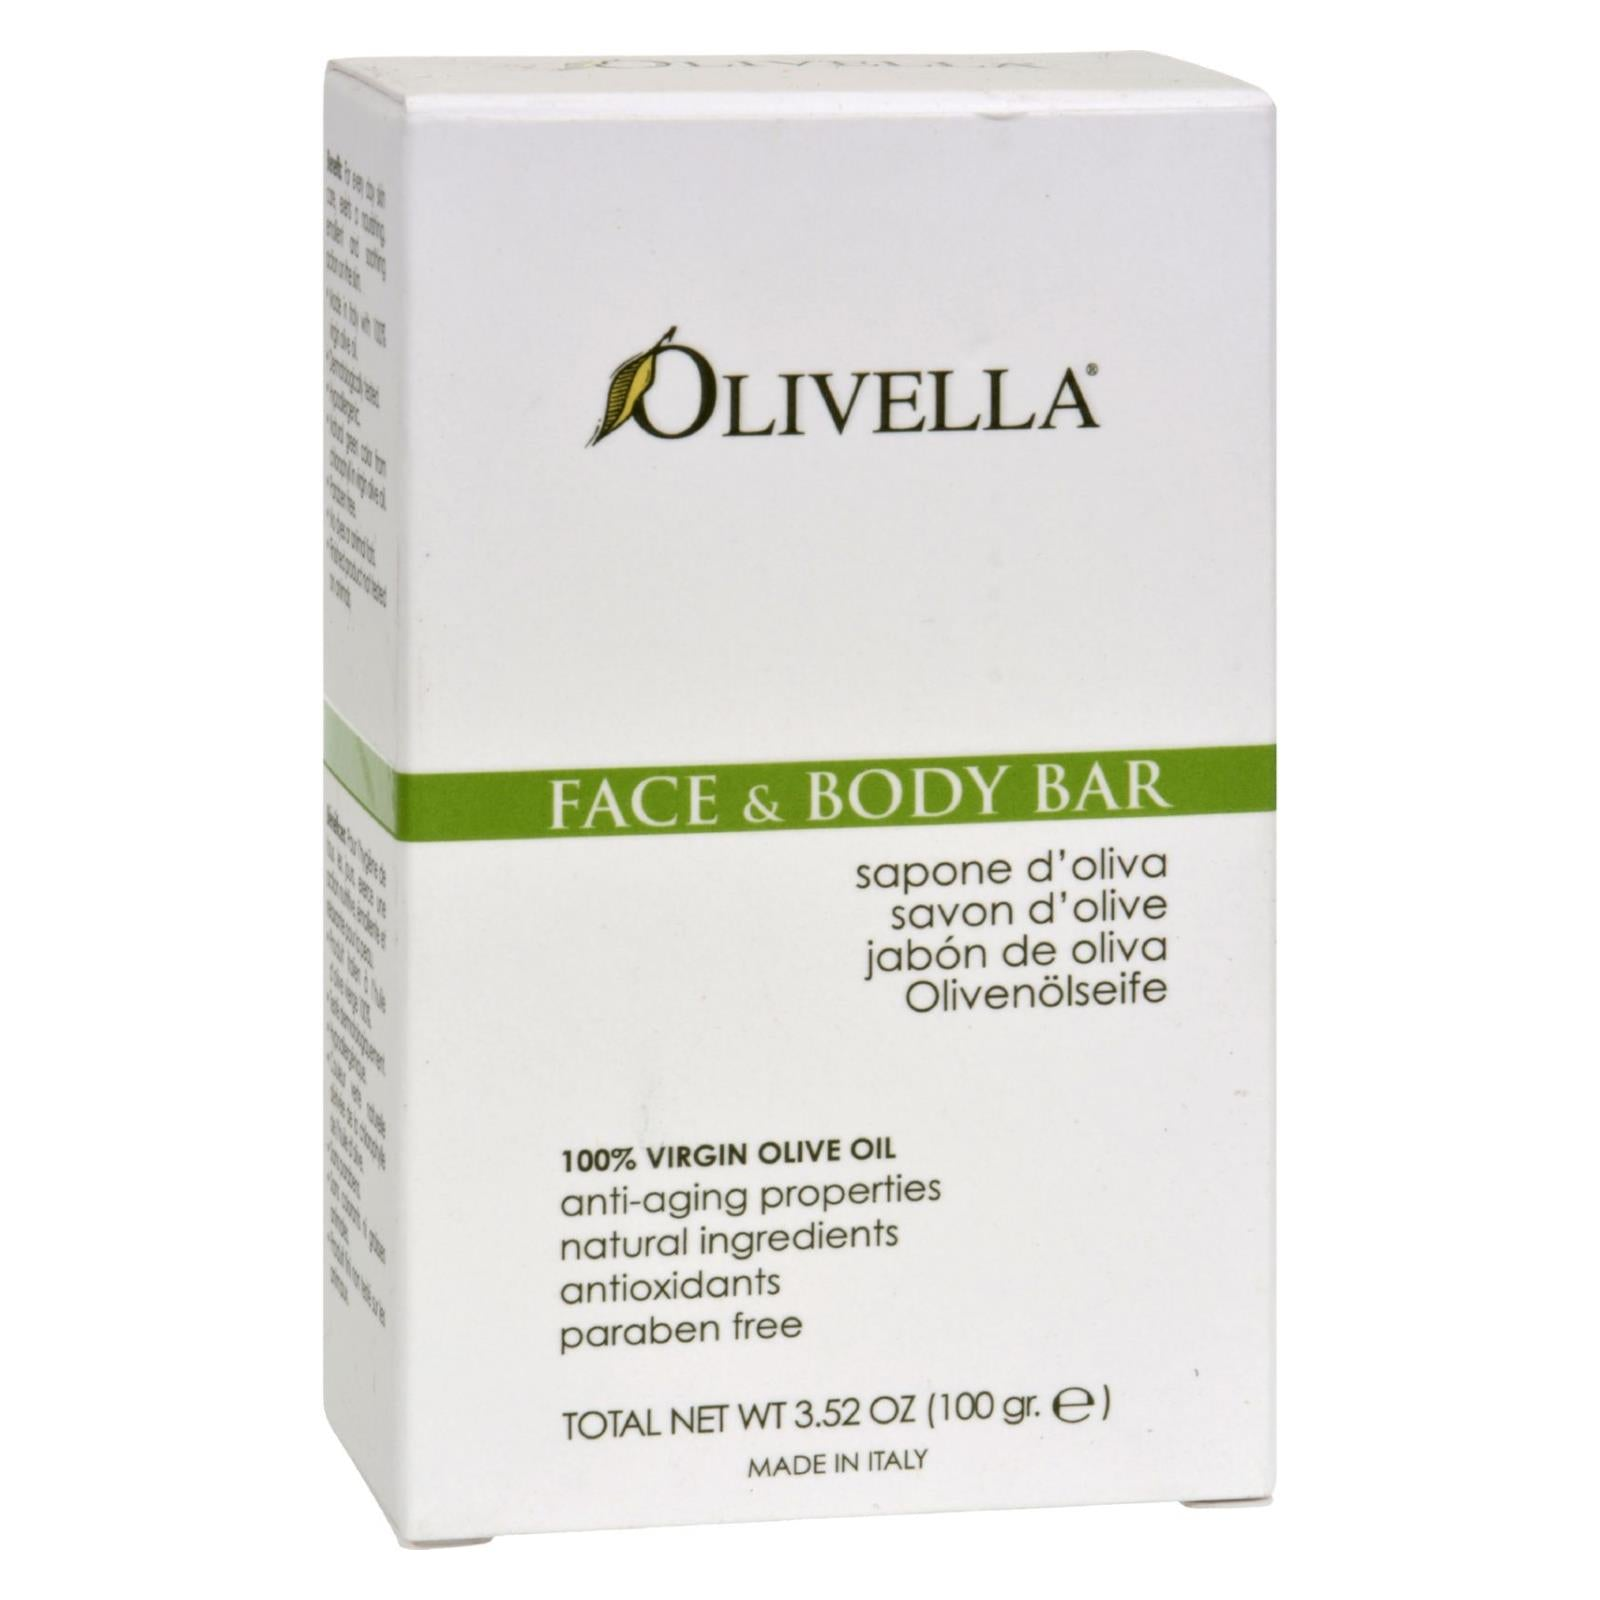 Buy Olivella Face and Body Bar - 3.52 oz - Cleansers from Veroeco.com